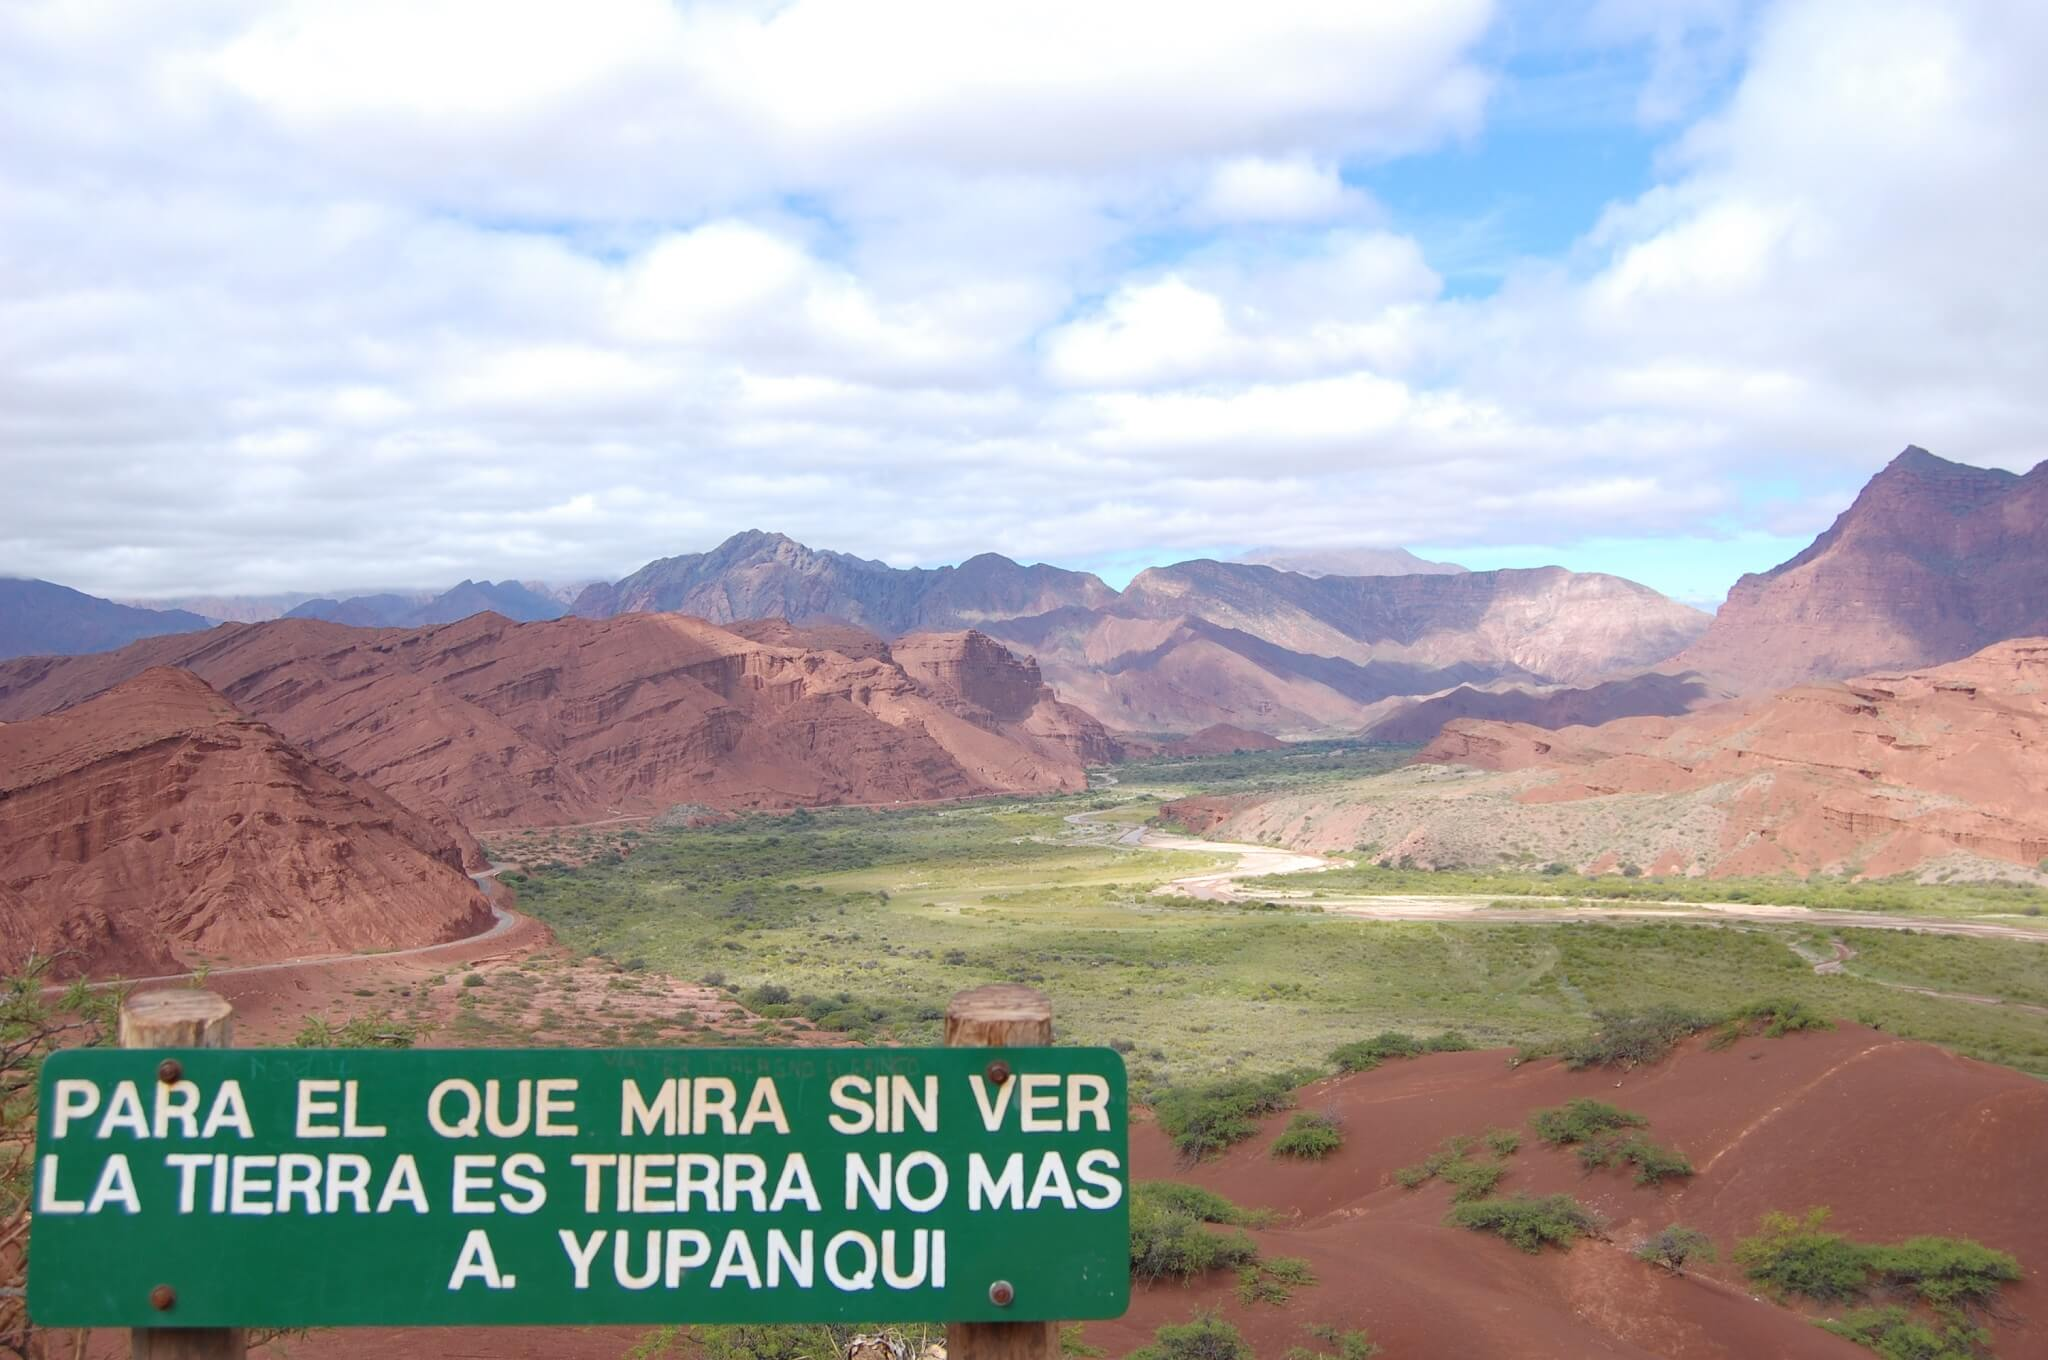 """For the one who looks without seeing the earth is no more than earth"" A. Yupanqui."